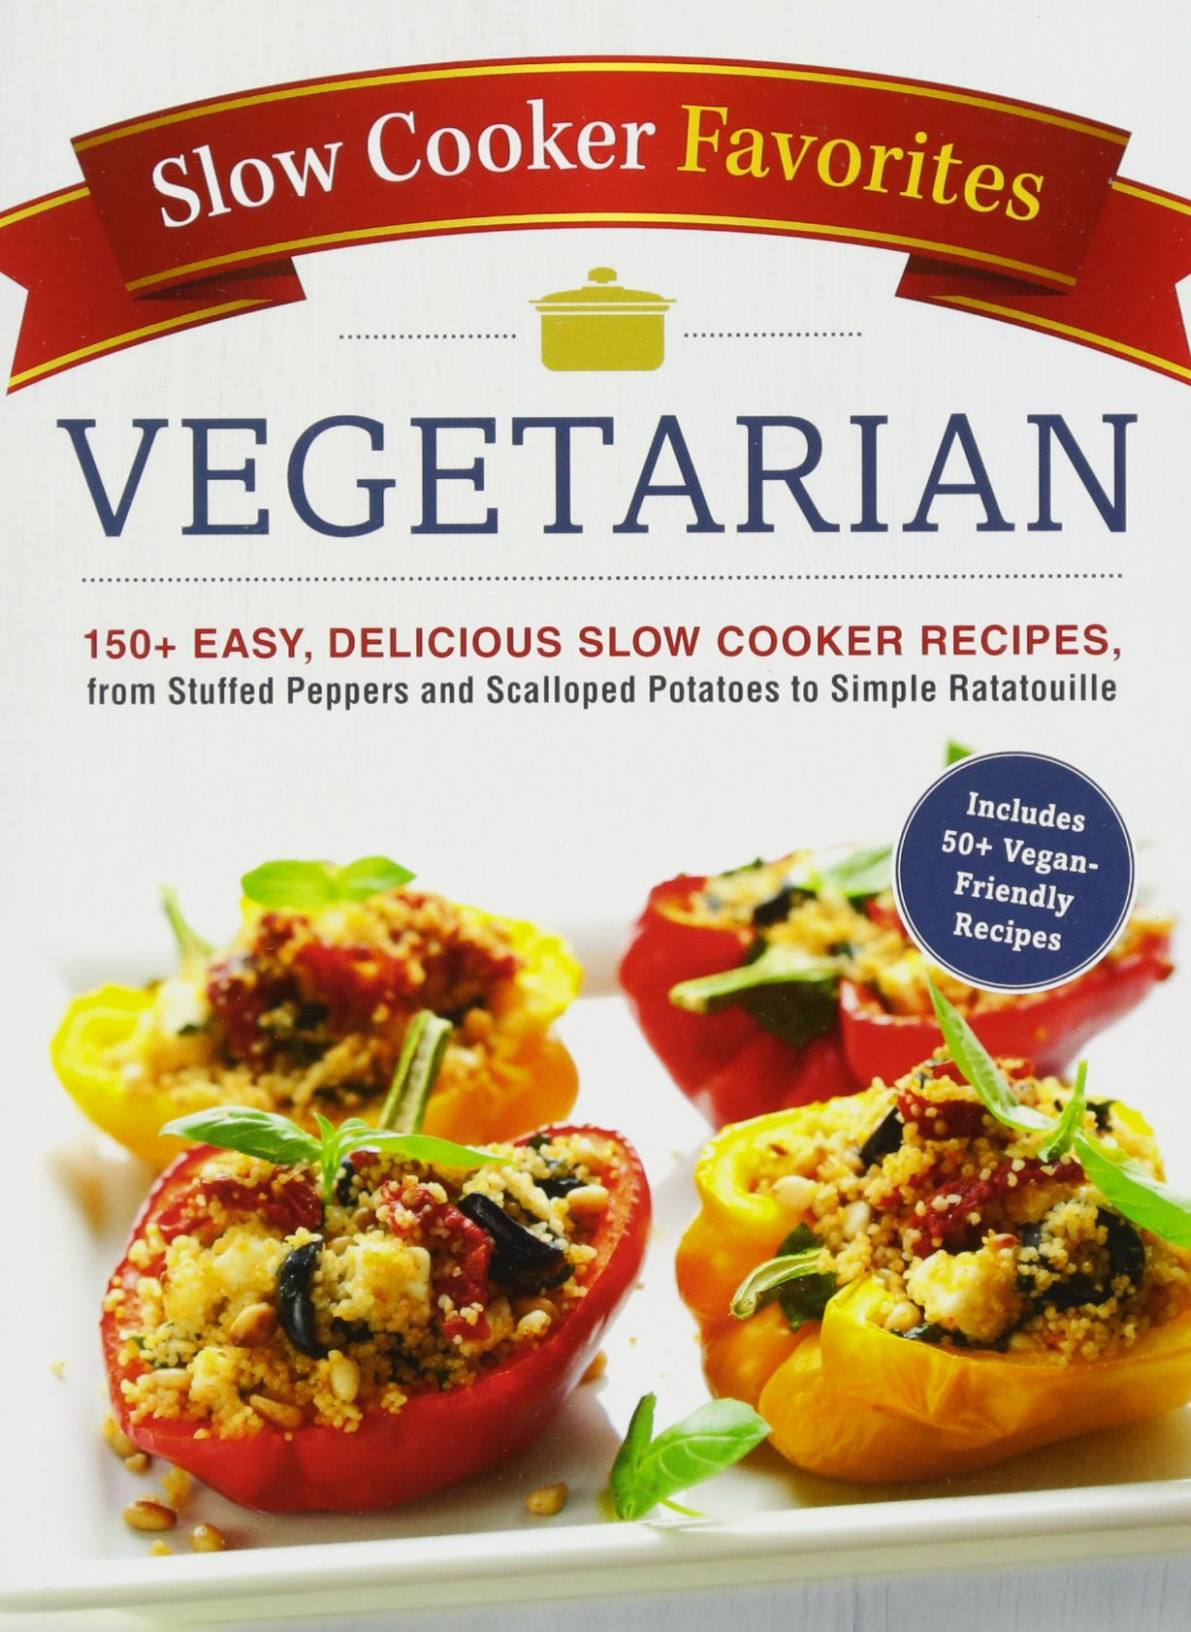 Slow Cooker Favorites Vegetarian: 14+ Easy, Delicious Slow ..